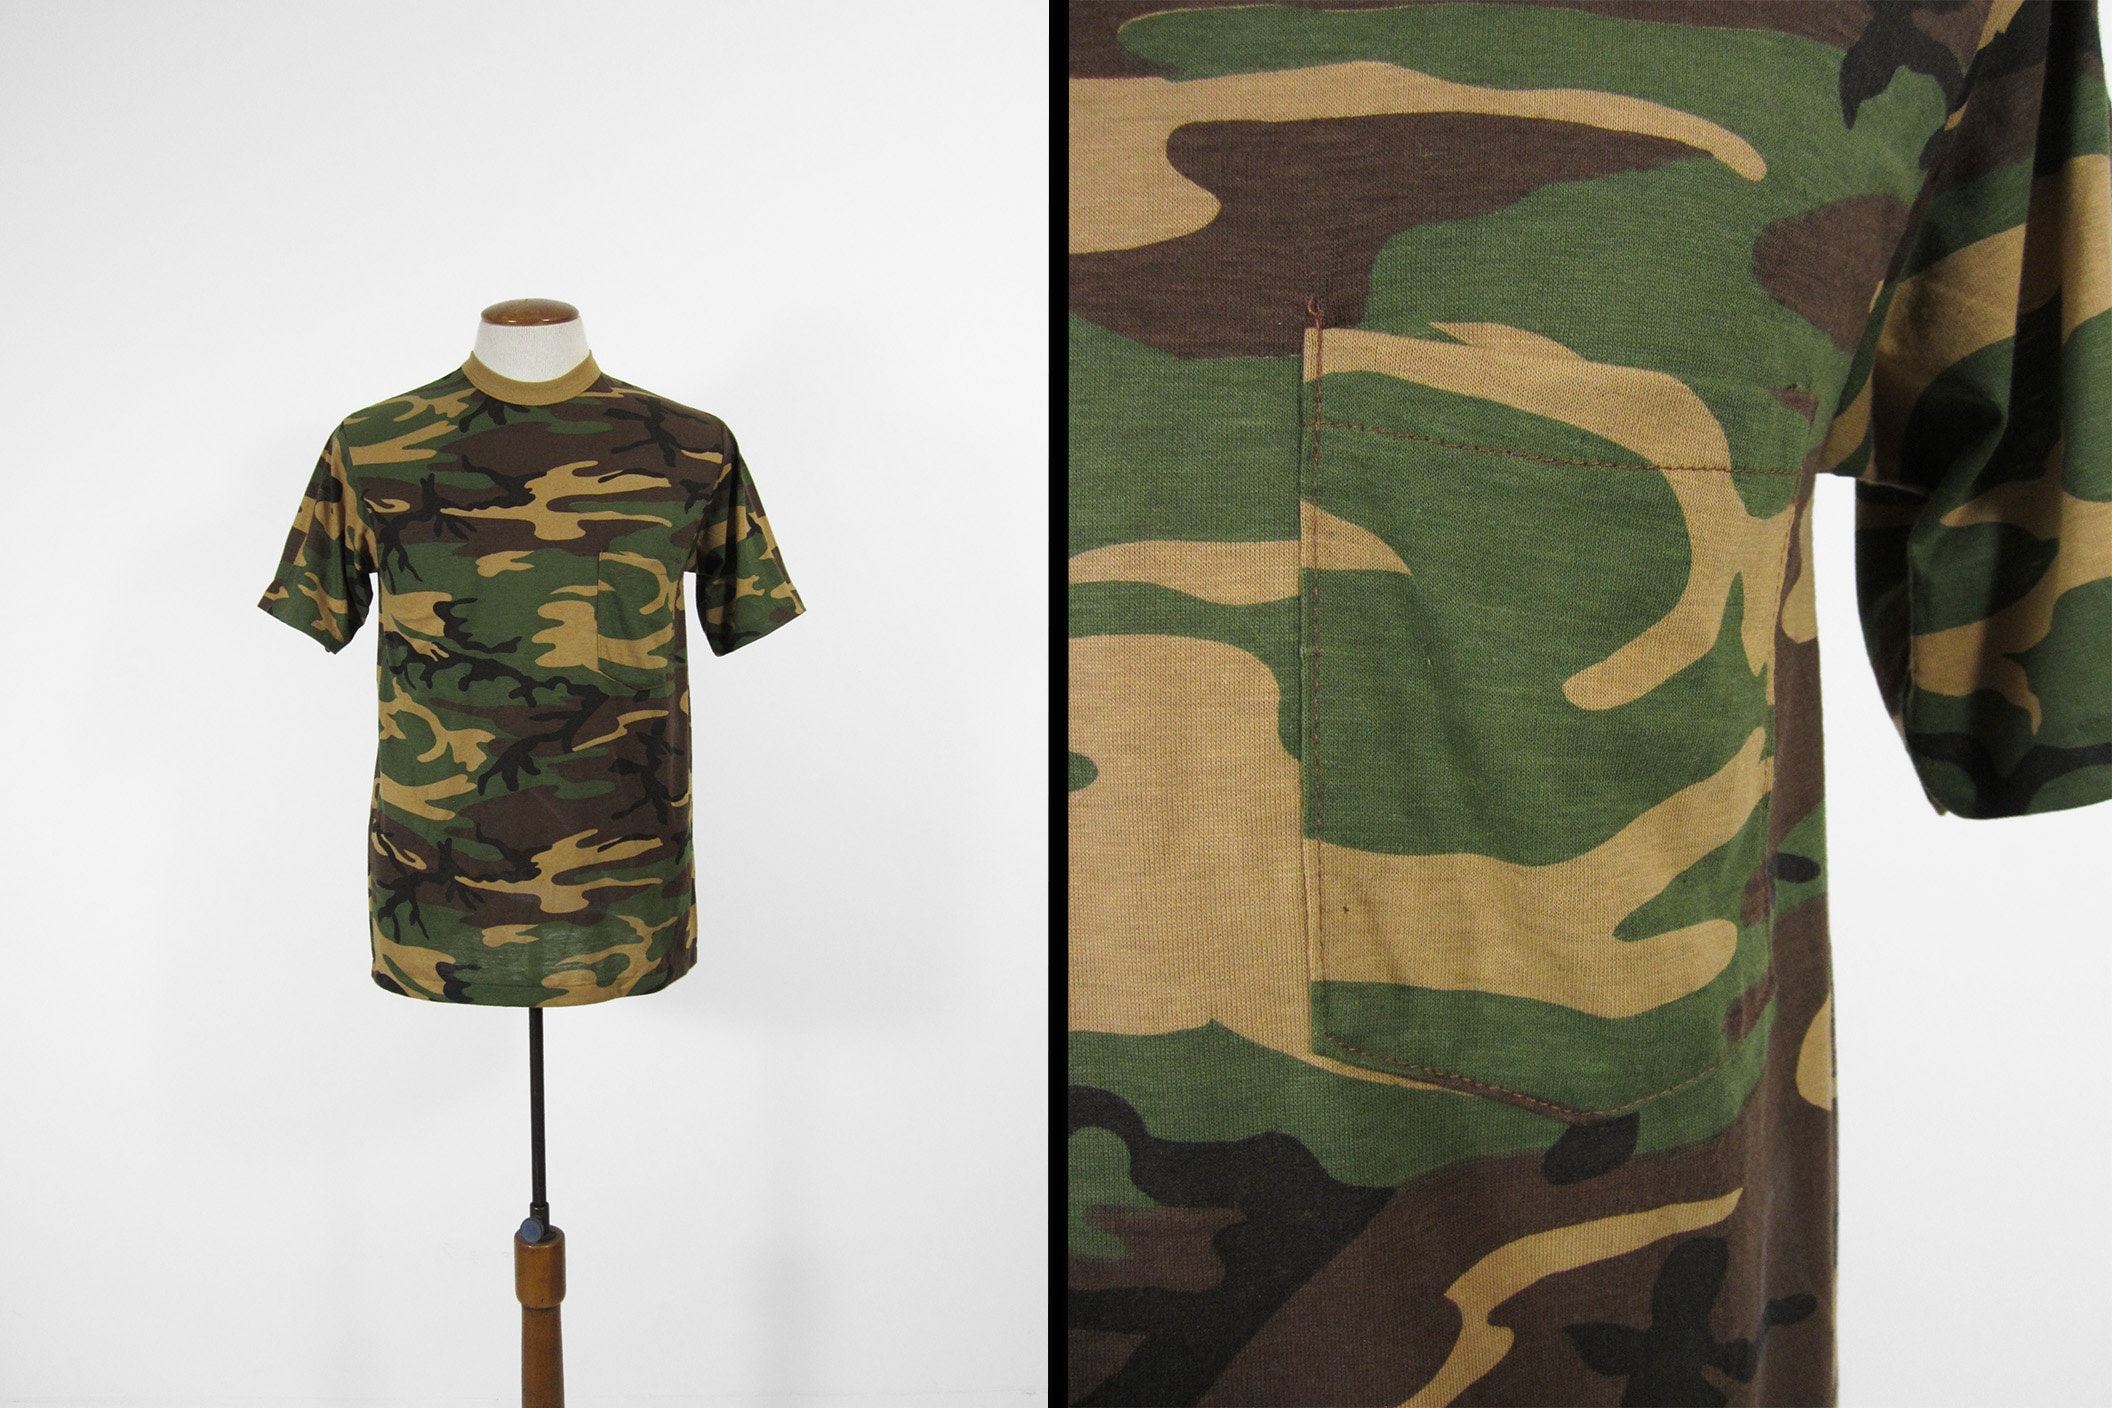 1970s Men's Shirt Styles – Vintage 70s Shirts for Guys Vintage Camo Pocket T-Shirt Nos Army Green Camouflage 1970S Tee - Medium $30.00 AT vintagedancer.com